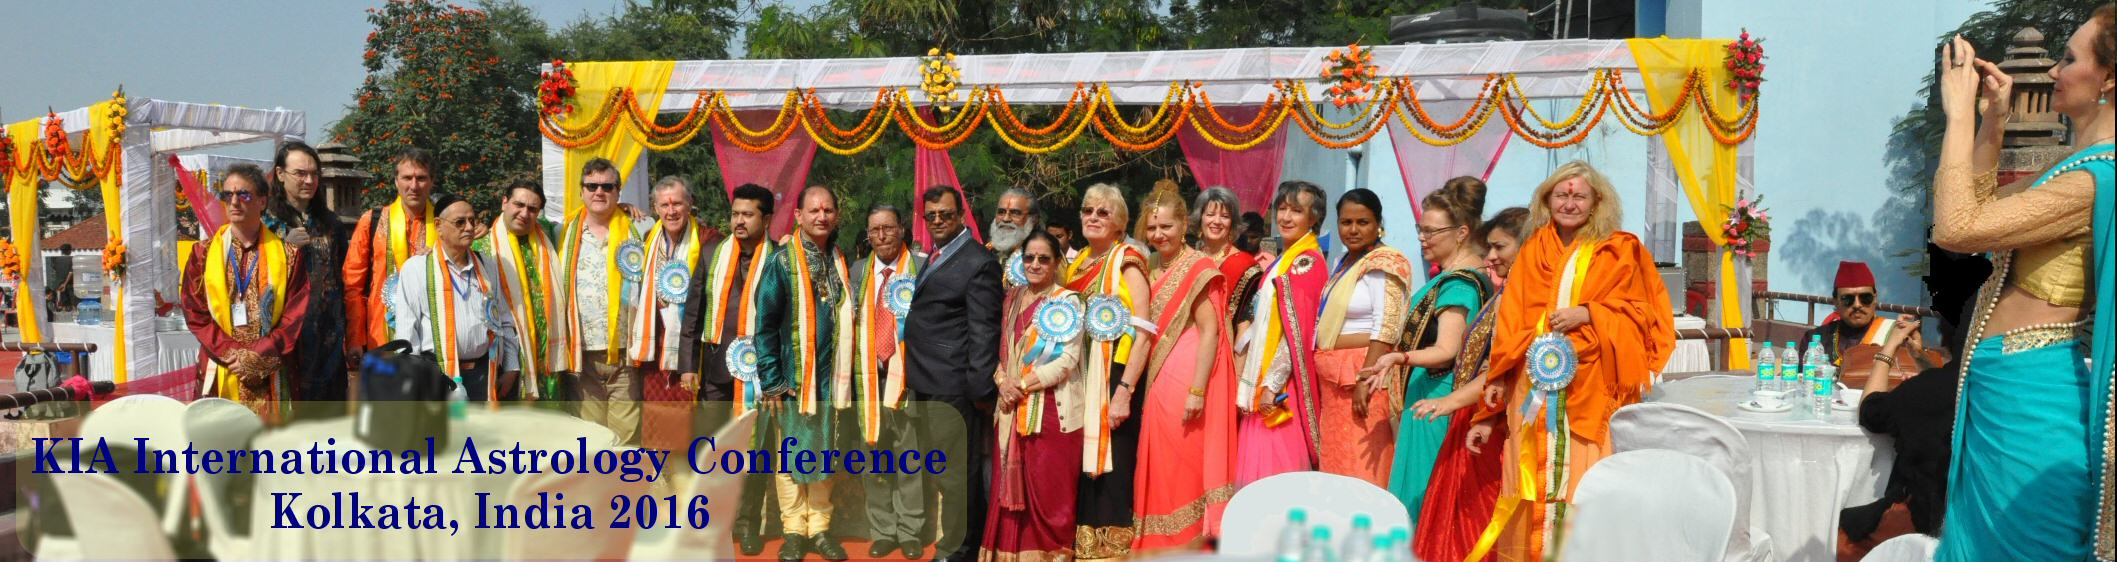 Some Indian and Overseas speakers at the Indian International Astrology Conference in Delhi 2016